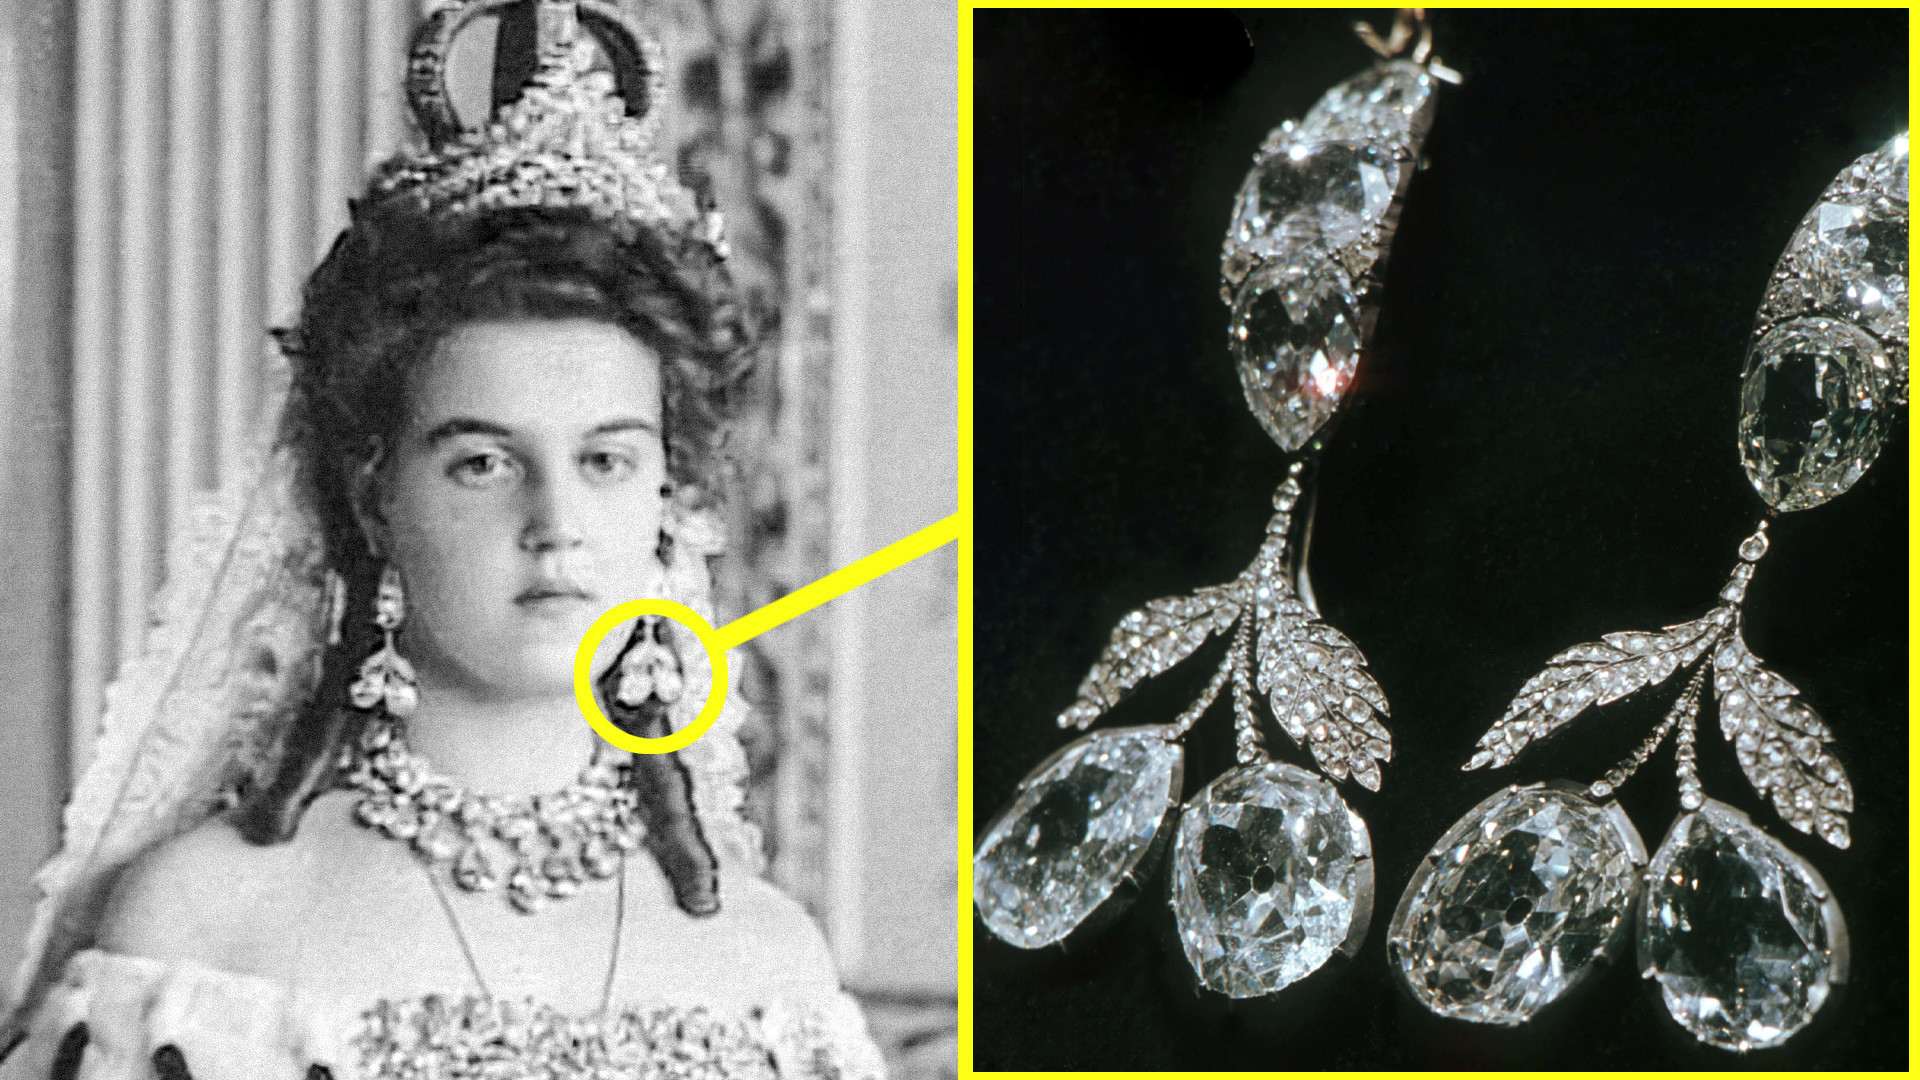 Maria Pavlovna wearing the Cherry earrings and the diadem with pink diamond. Now both these items are kept in Moscow's Diamond Fund. The wedding crown was sold abroad.